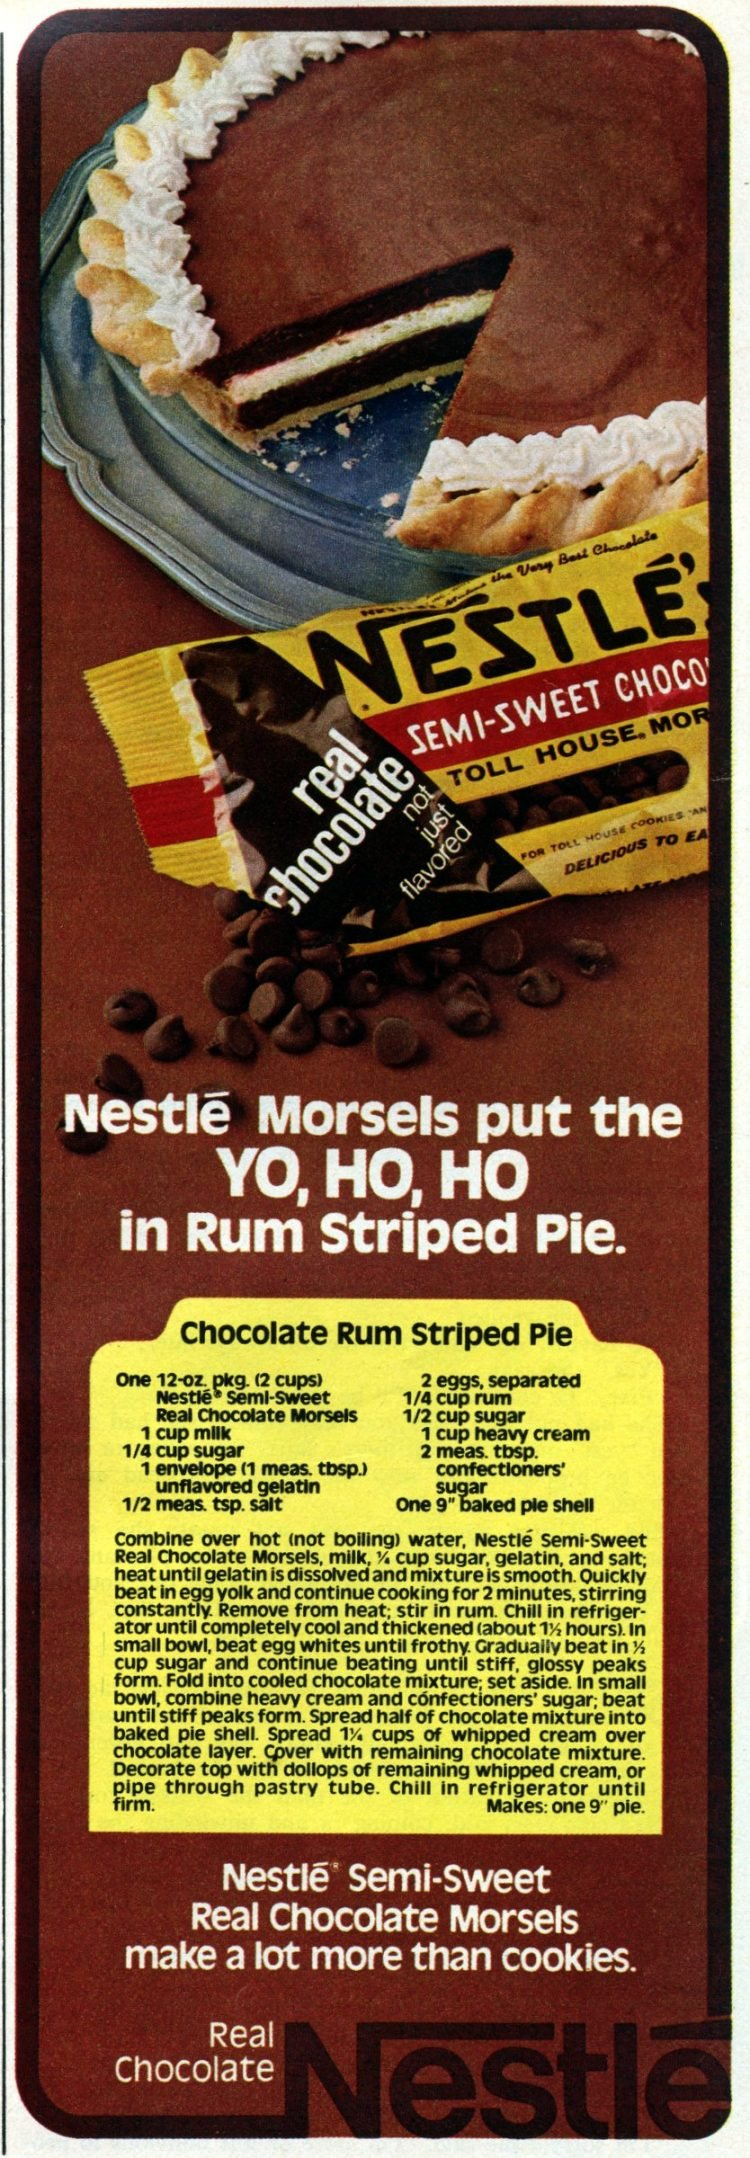 Chocolate rum striped pie recipe - 1978